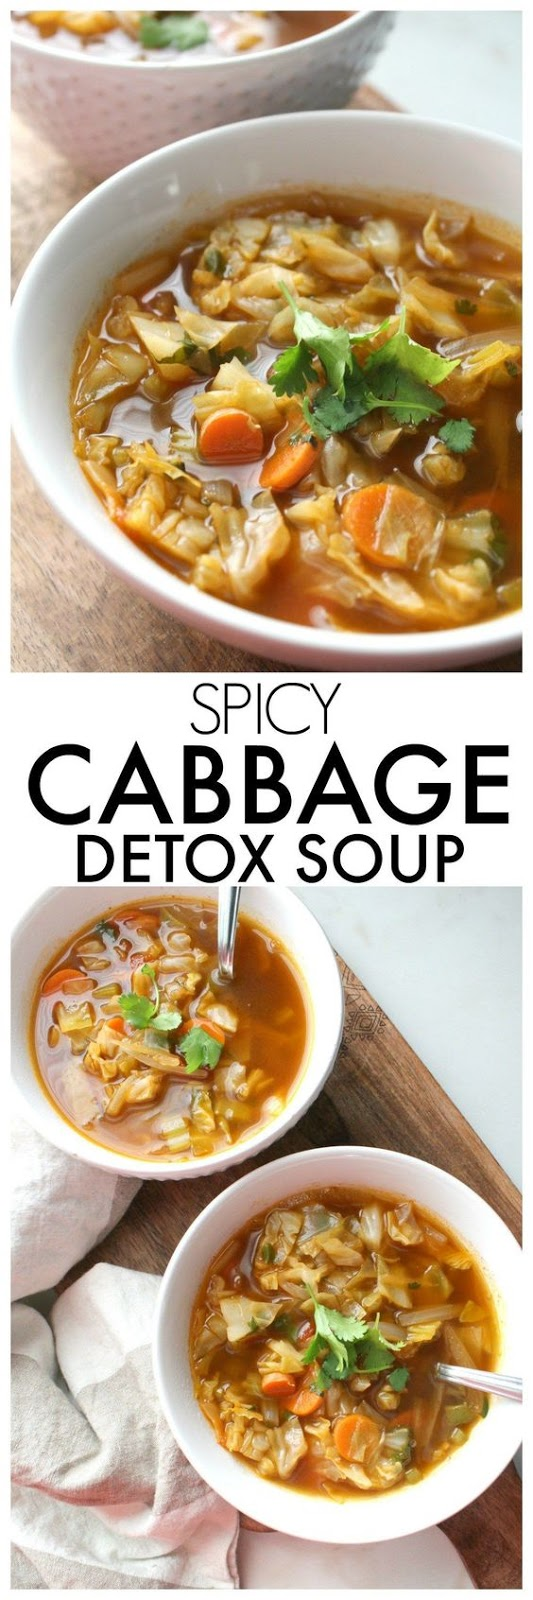 Spicy Cabbage Detox Soup